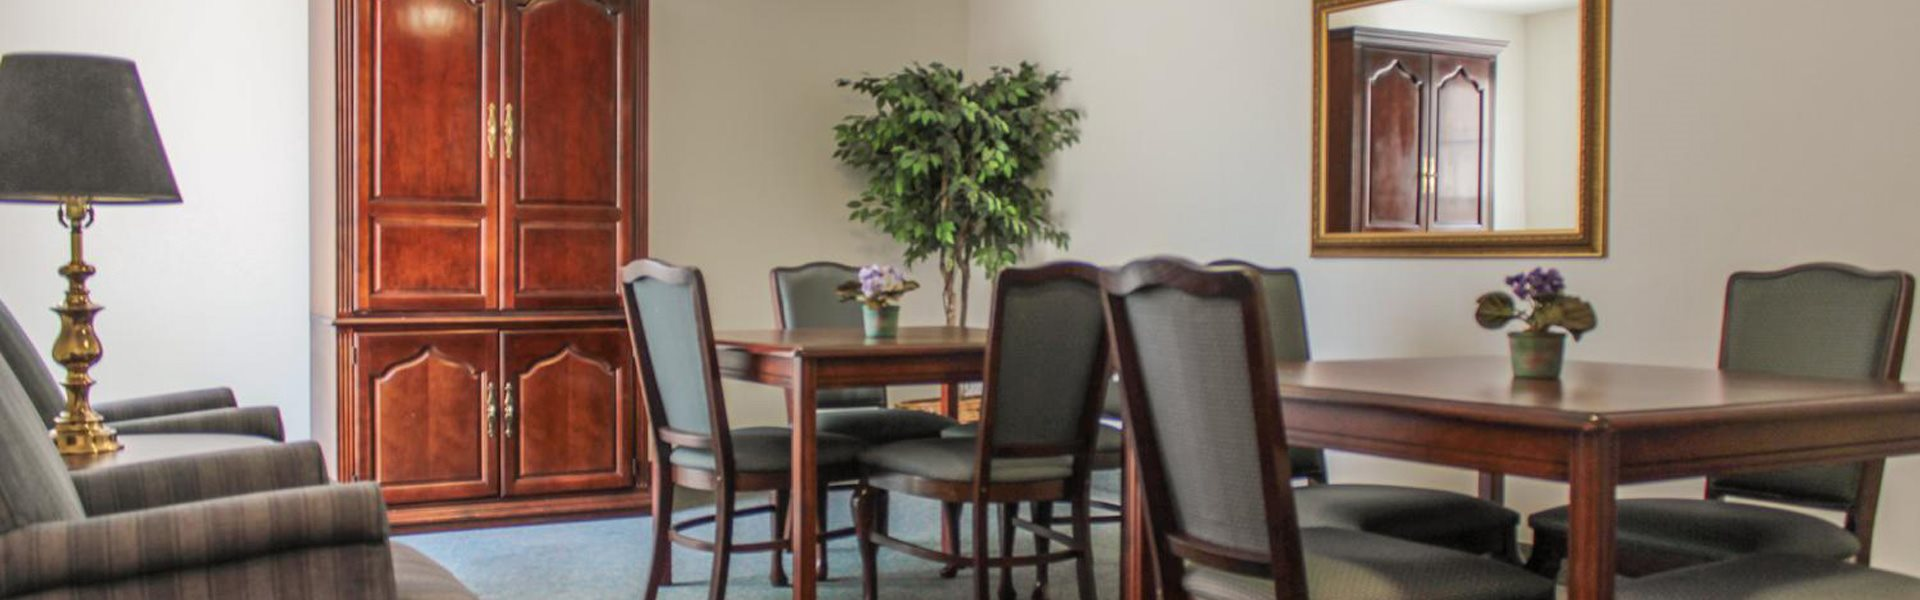 Table and Chairs Santa Clarita, CA | Bouquet Canyon Senior Apartments For Rent